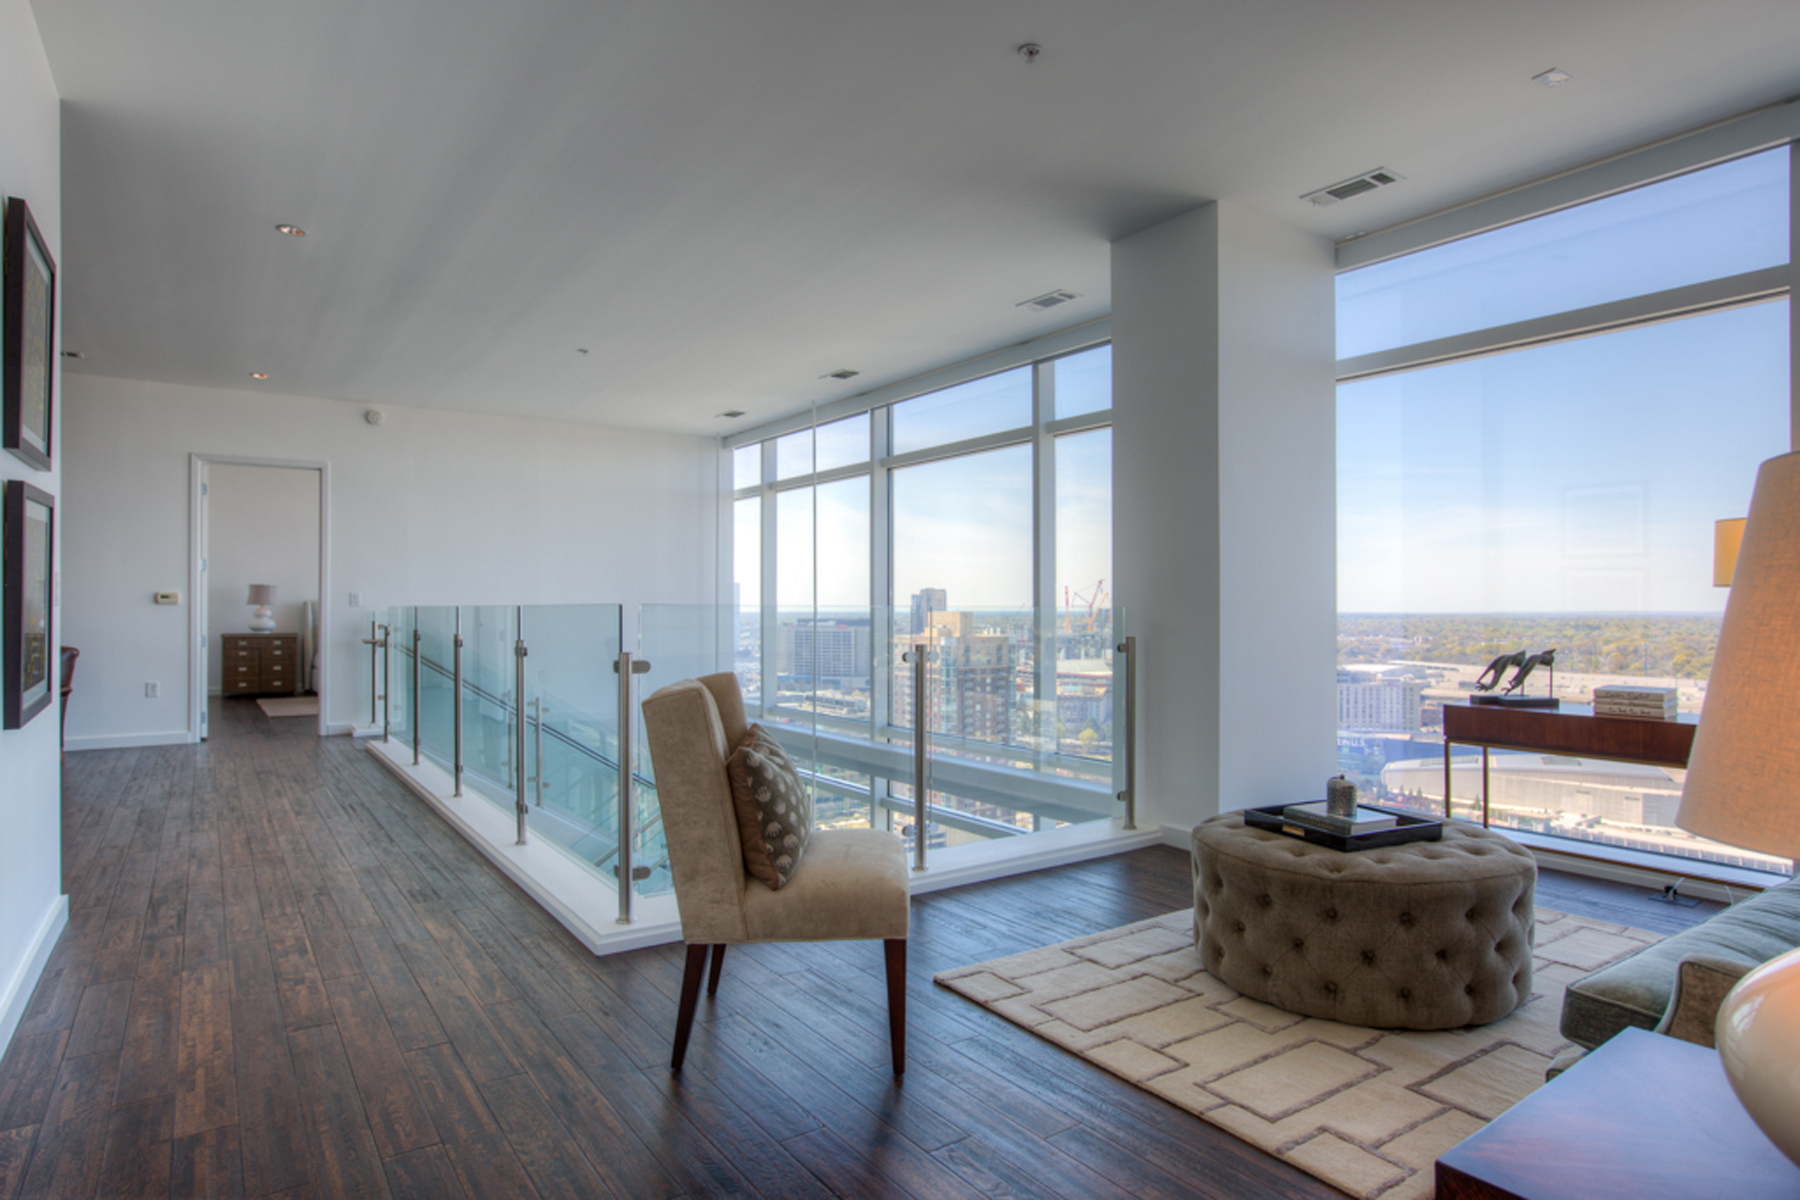 Additional photo for property listing at Spectacular Two Level Atlanta Penthouse With Luxury Hotel Amenities 45 Ivan Allen Jr Boulevard PH#2703 Atlanta, 喬治亞州 30308 美國